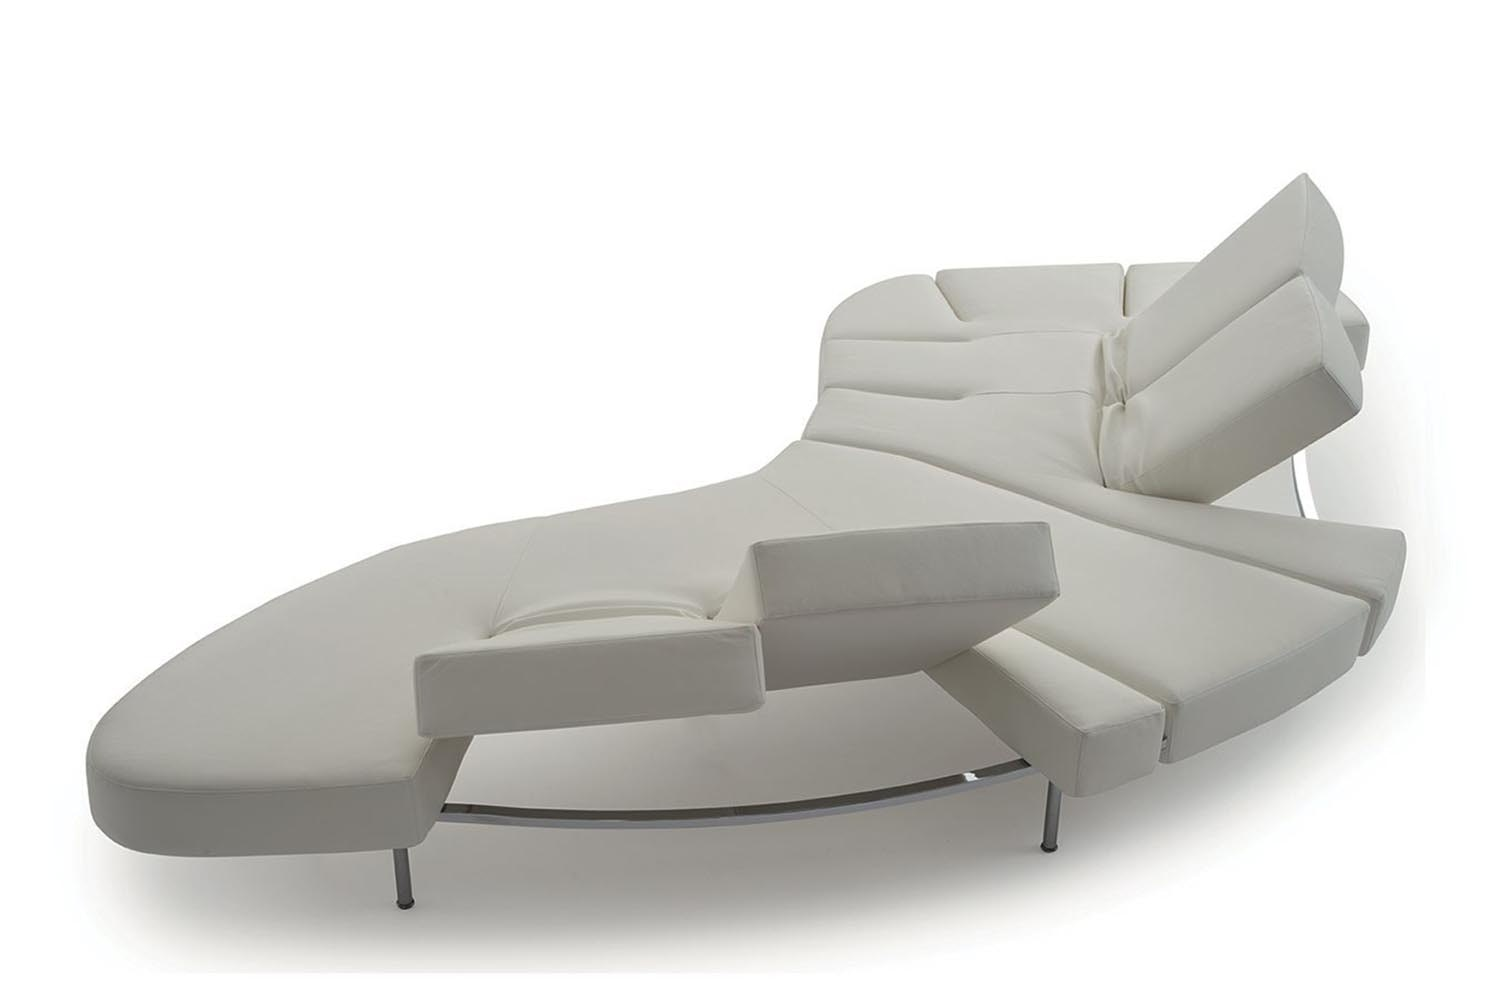 Flap Sofa by Francesco Binfare for Edra